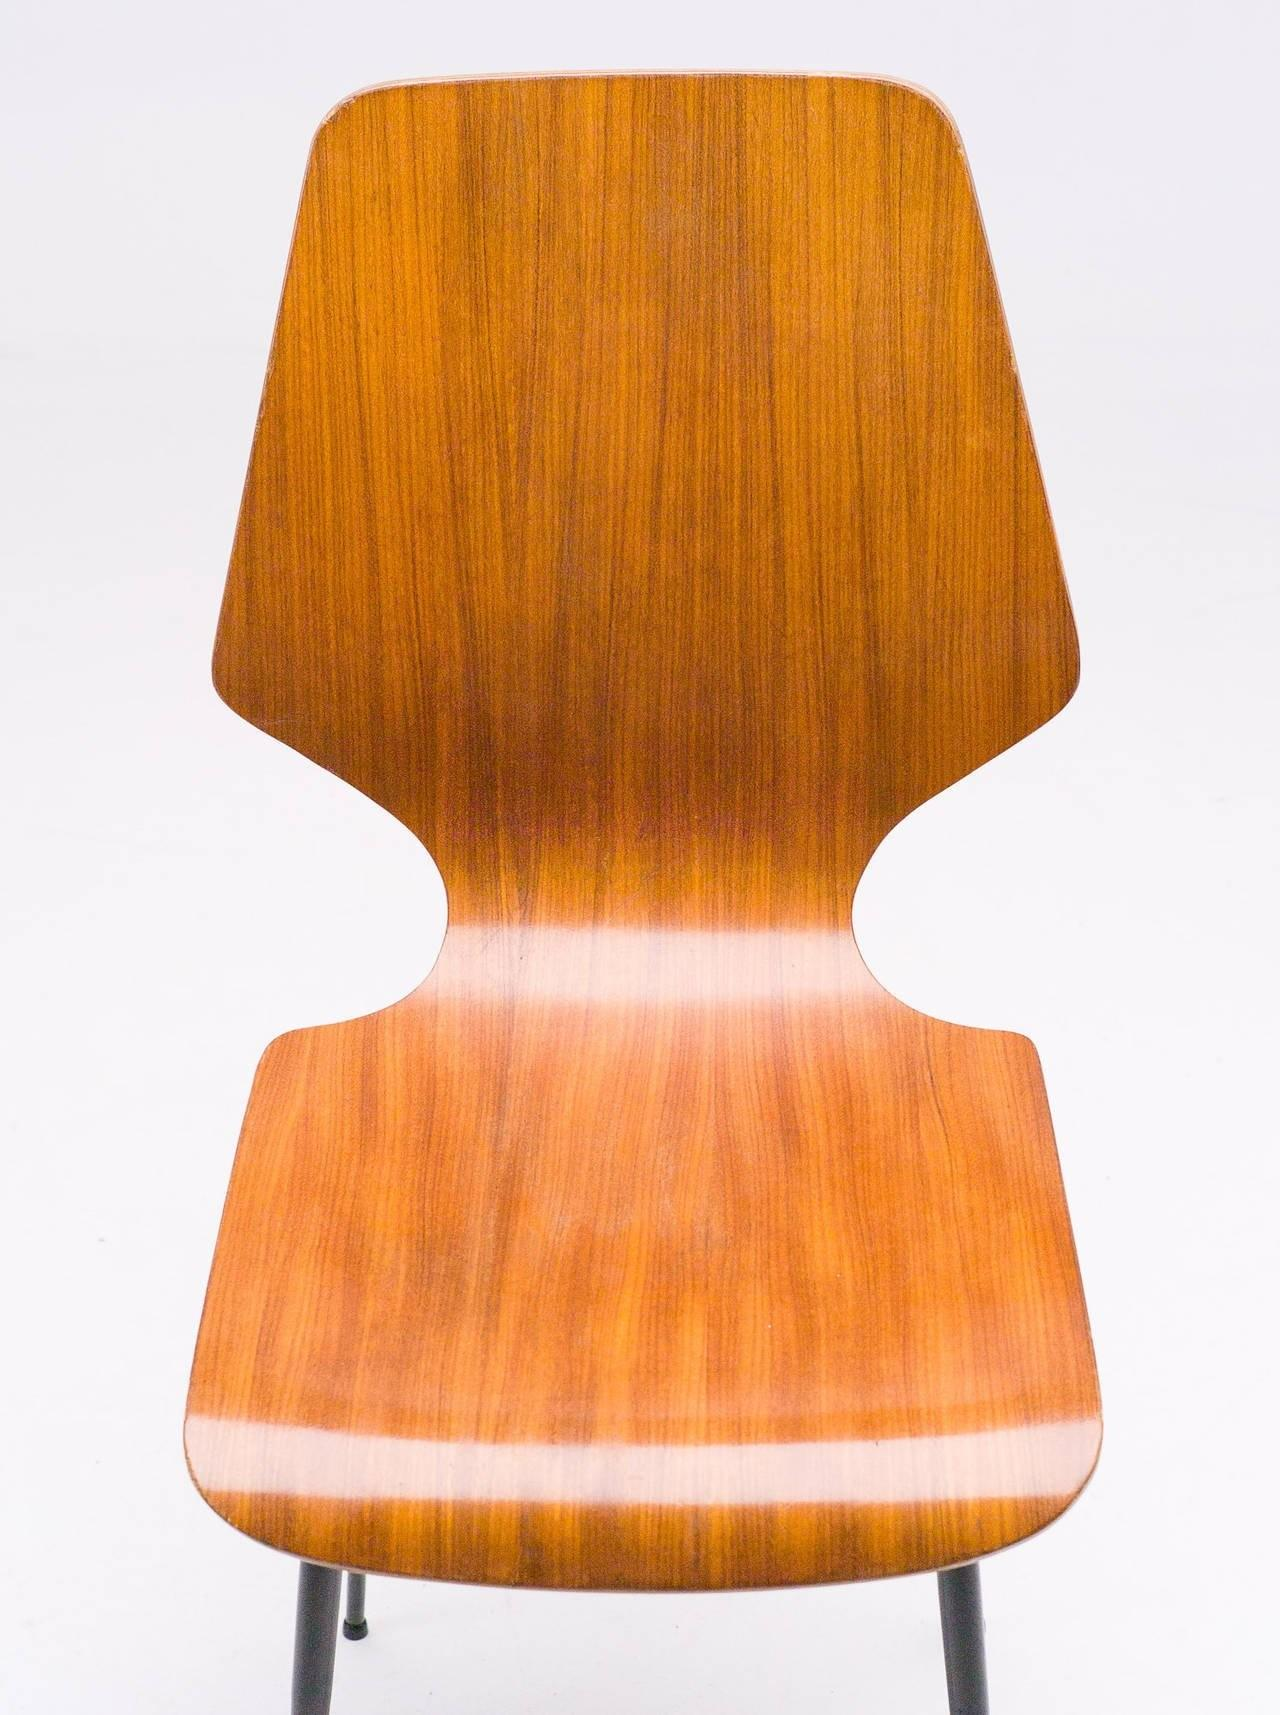 Elegant Italian 1960s Plywood Dining Chairs Attributed